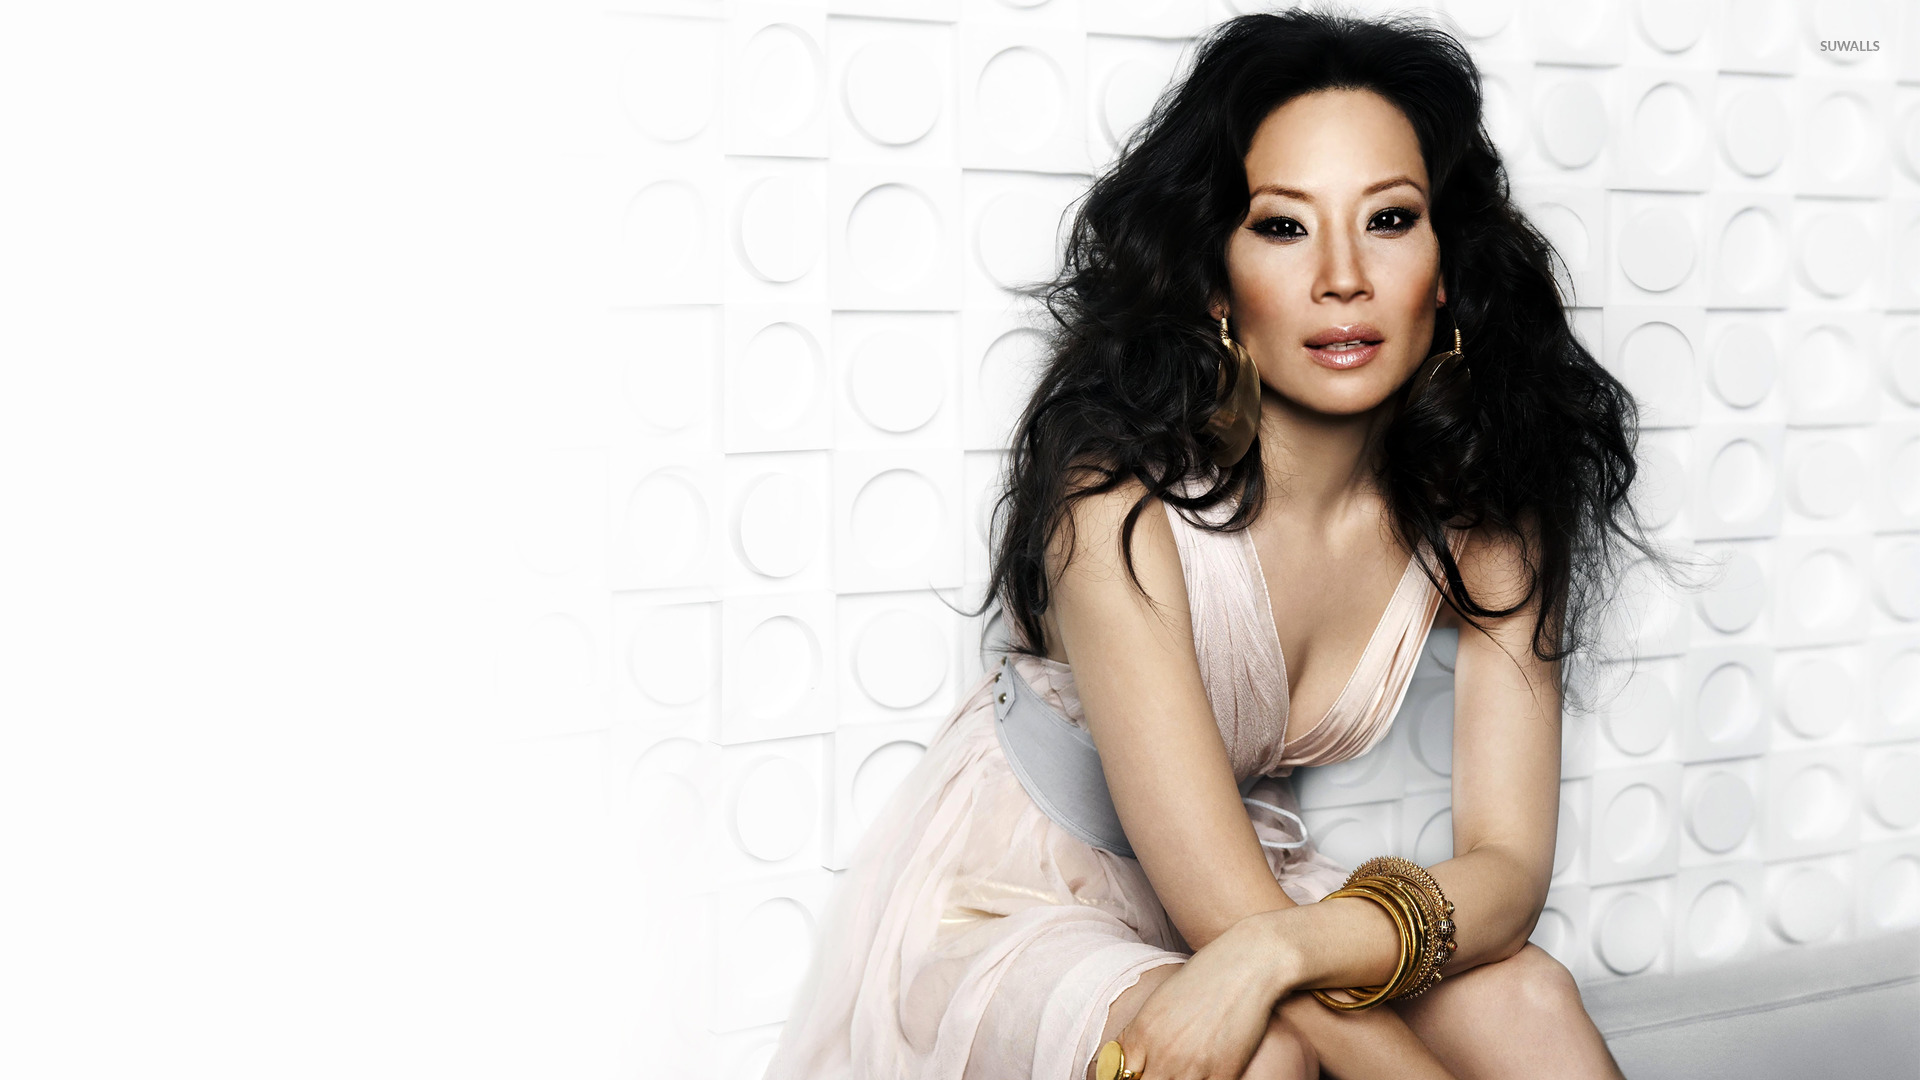 lucy liu free wallpaper - photo #21